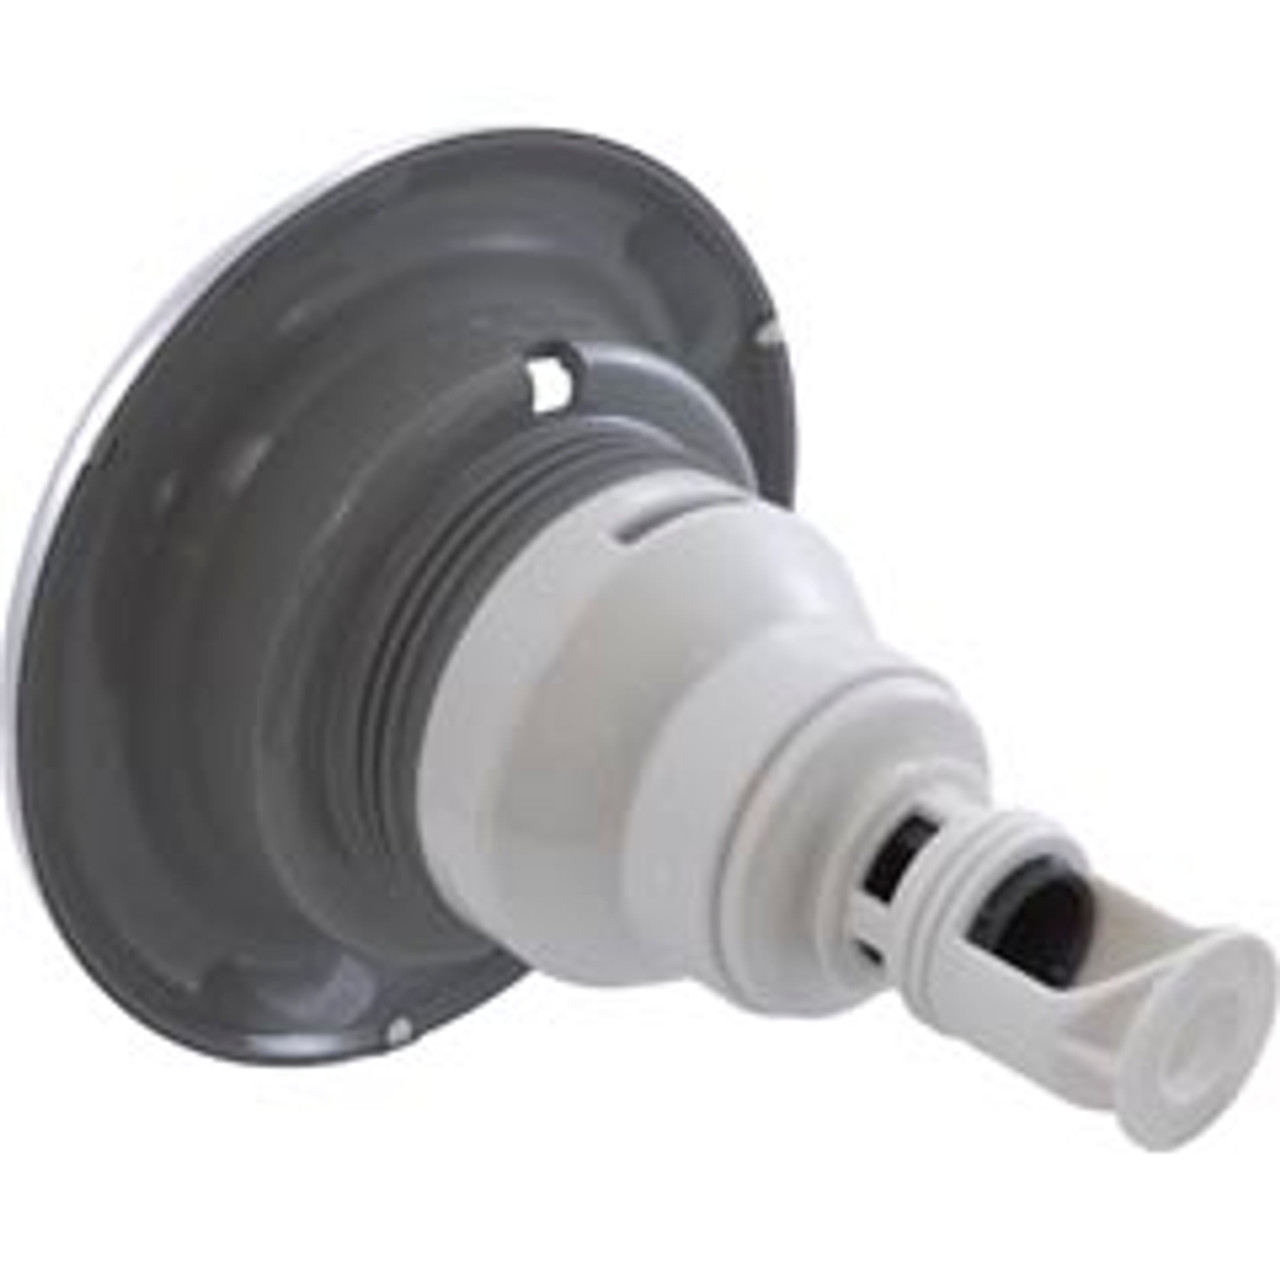 """229-7637S, Waterway, 5"""", Dia, SS, Stainless, steel, Power Storm, Directional, Threaded, Gray, Scalloped, Jet, Internal. FREE SHIPPING, spa, hot tub"""